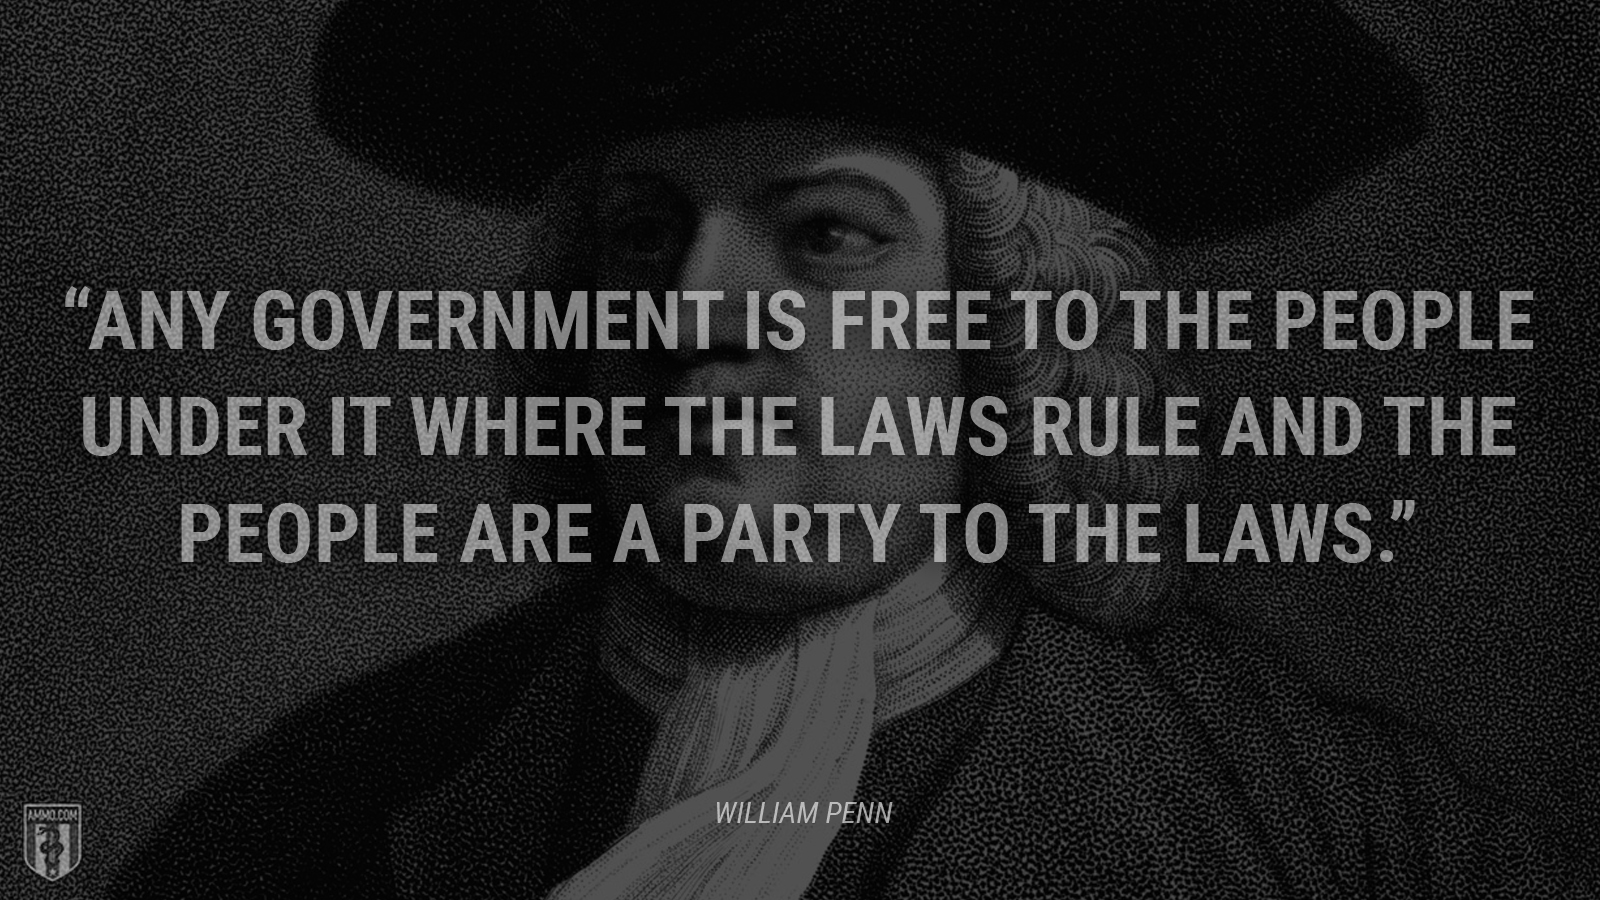 """""""Any government is free to the people under it where the laws rule and the people are a party to the laws."""" - William Penn"""